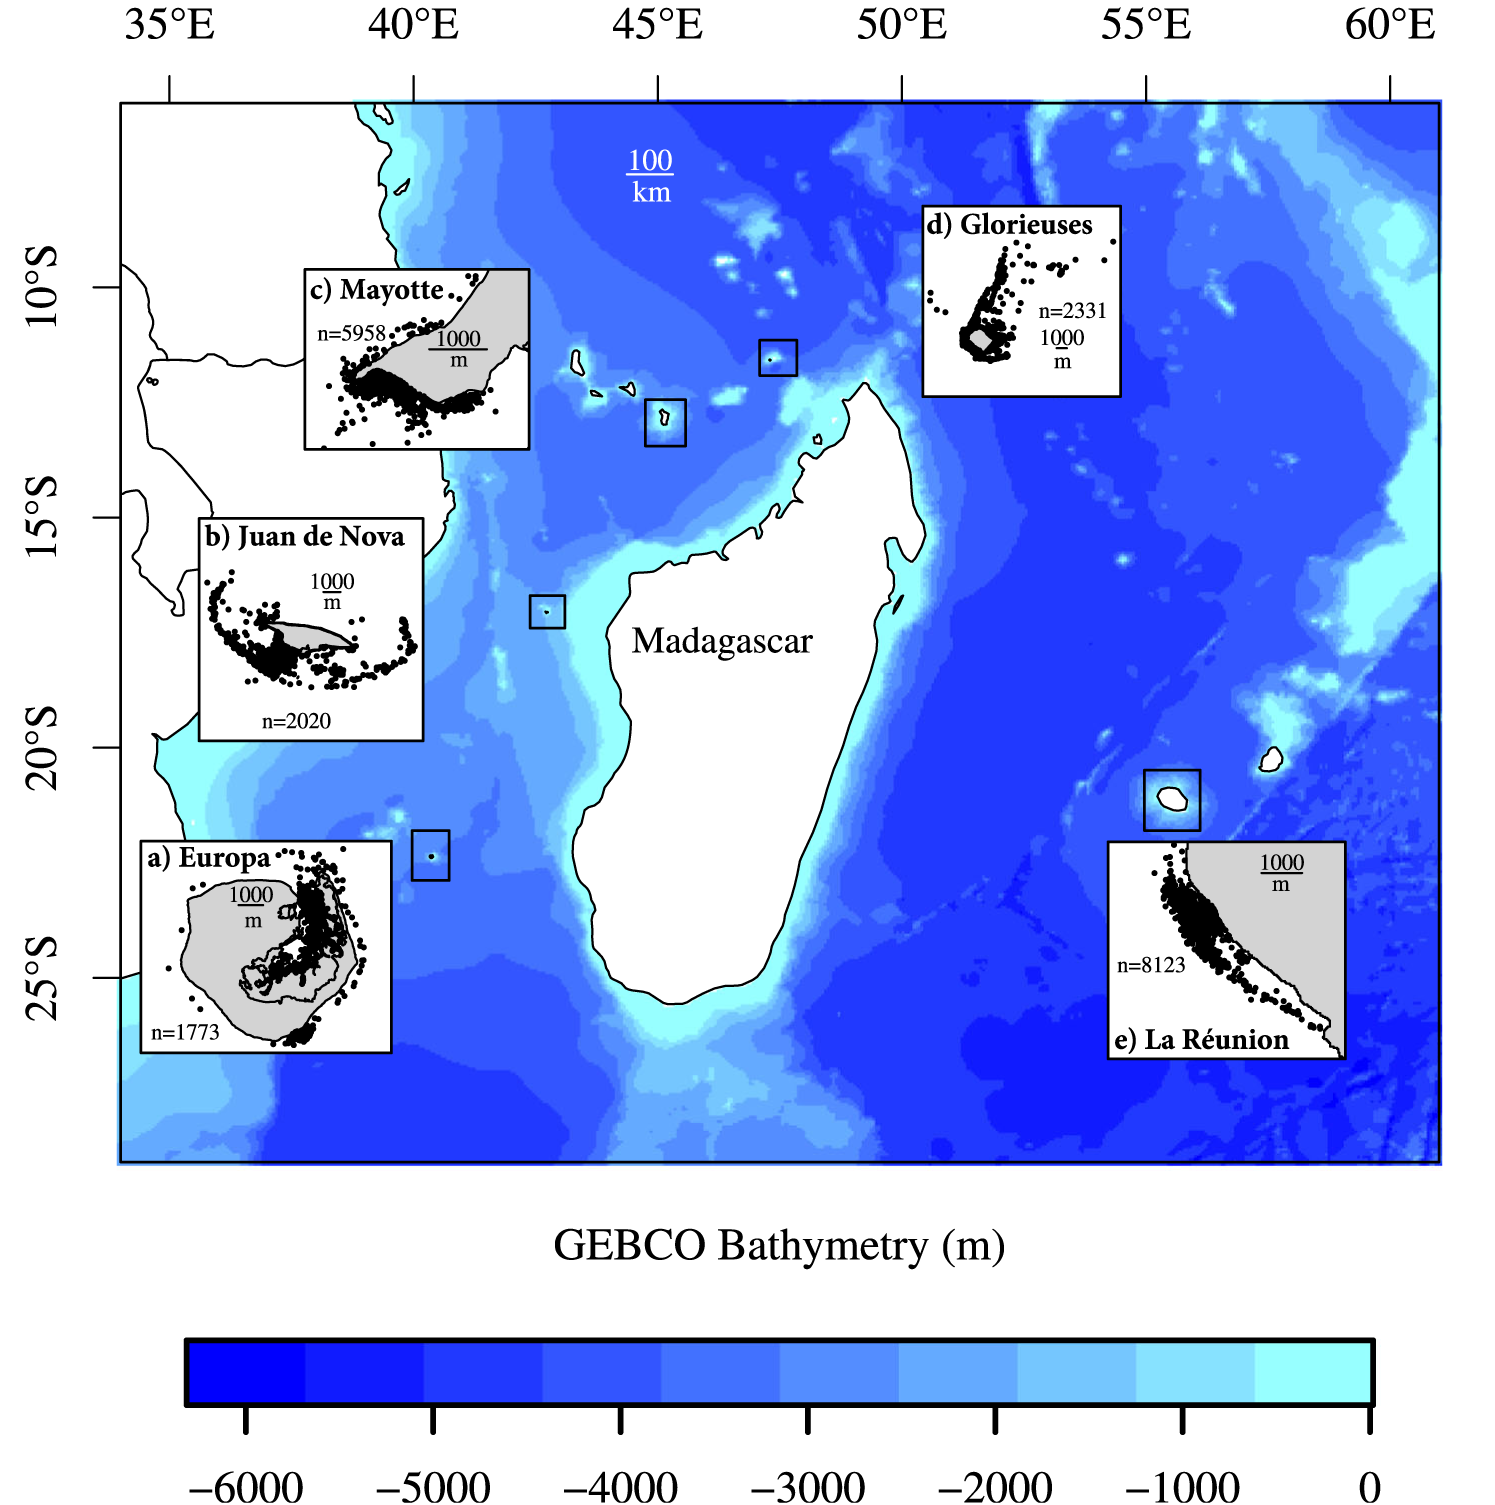 The five islands where the juvenile green turtles were tagged and satellite tracked. (from [Chambault et al, 2020])